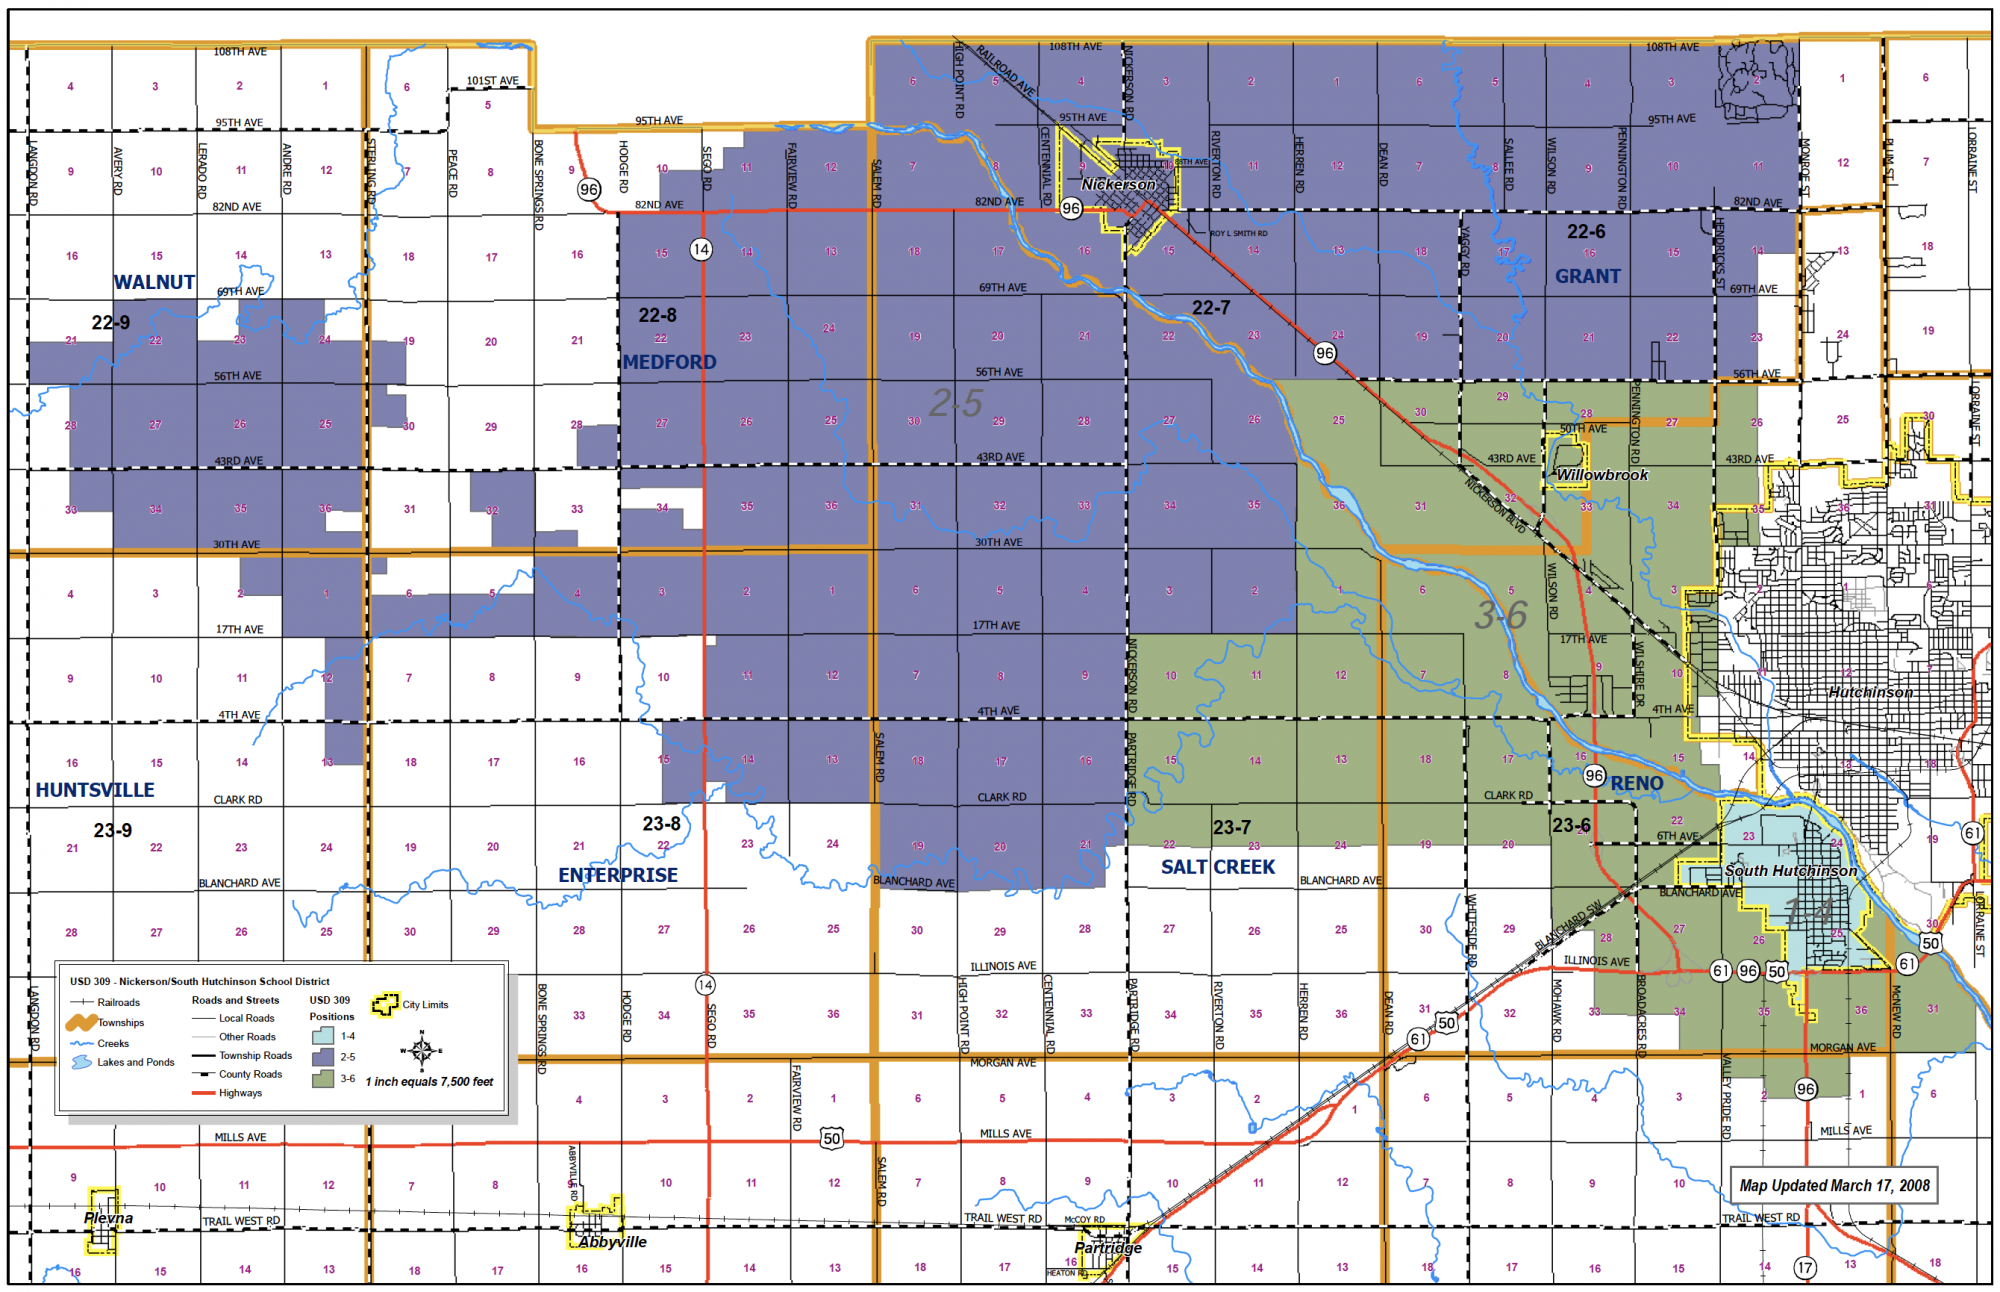 Map of school district boundaries